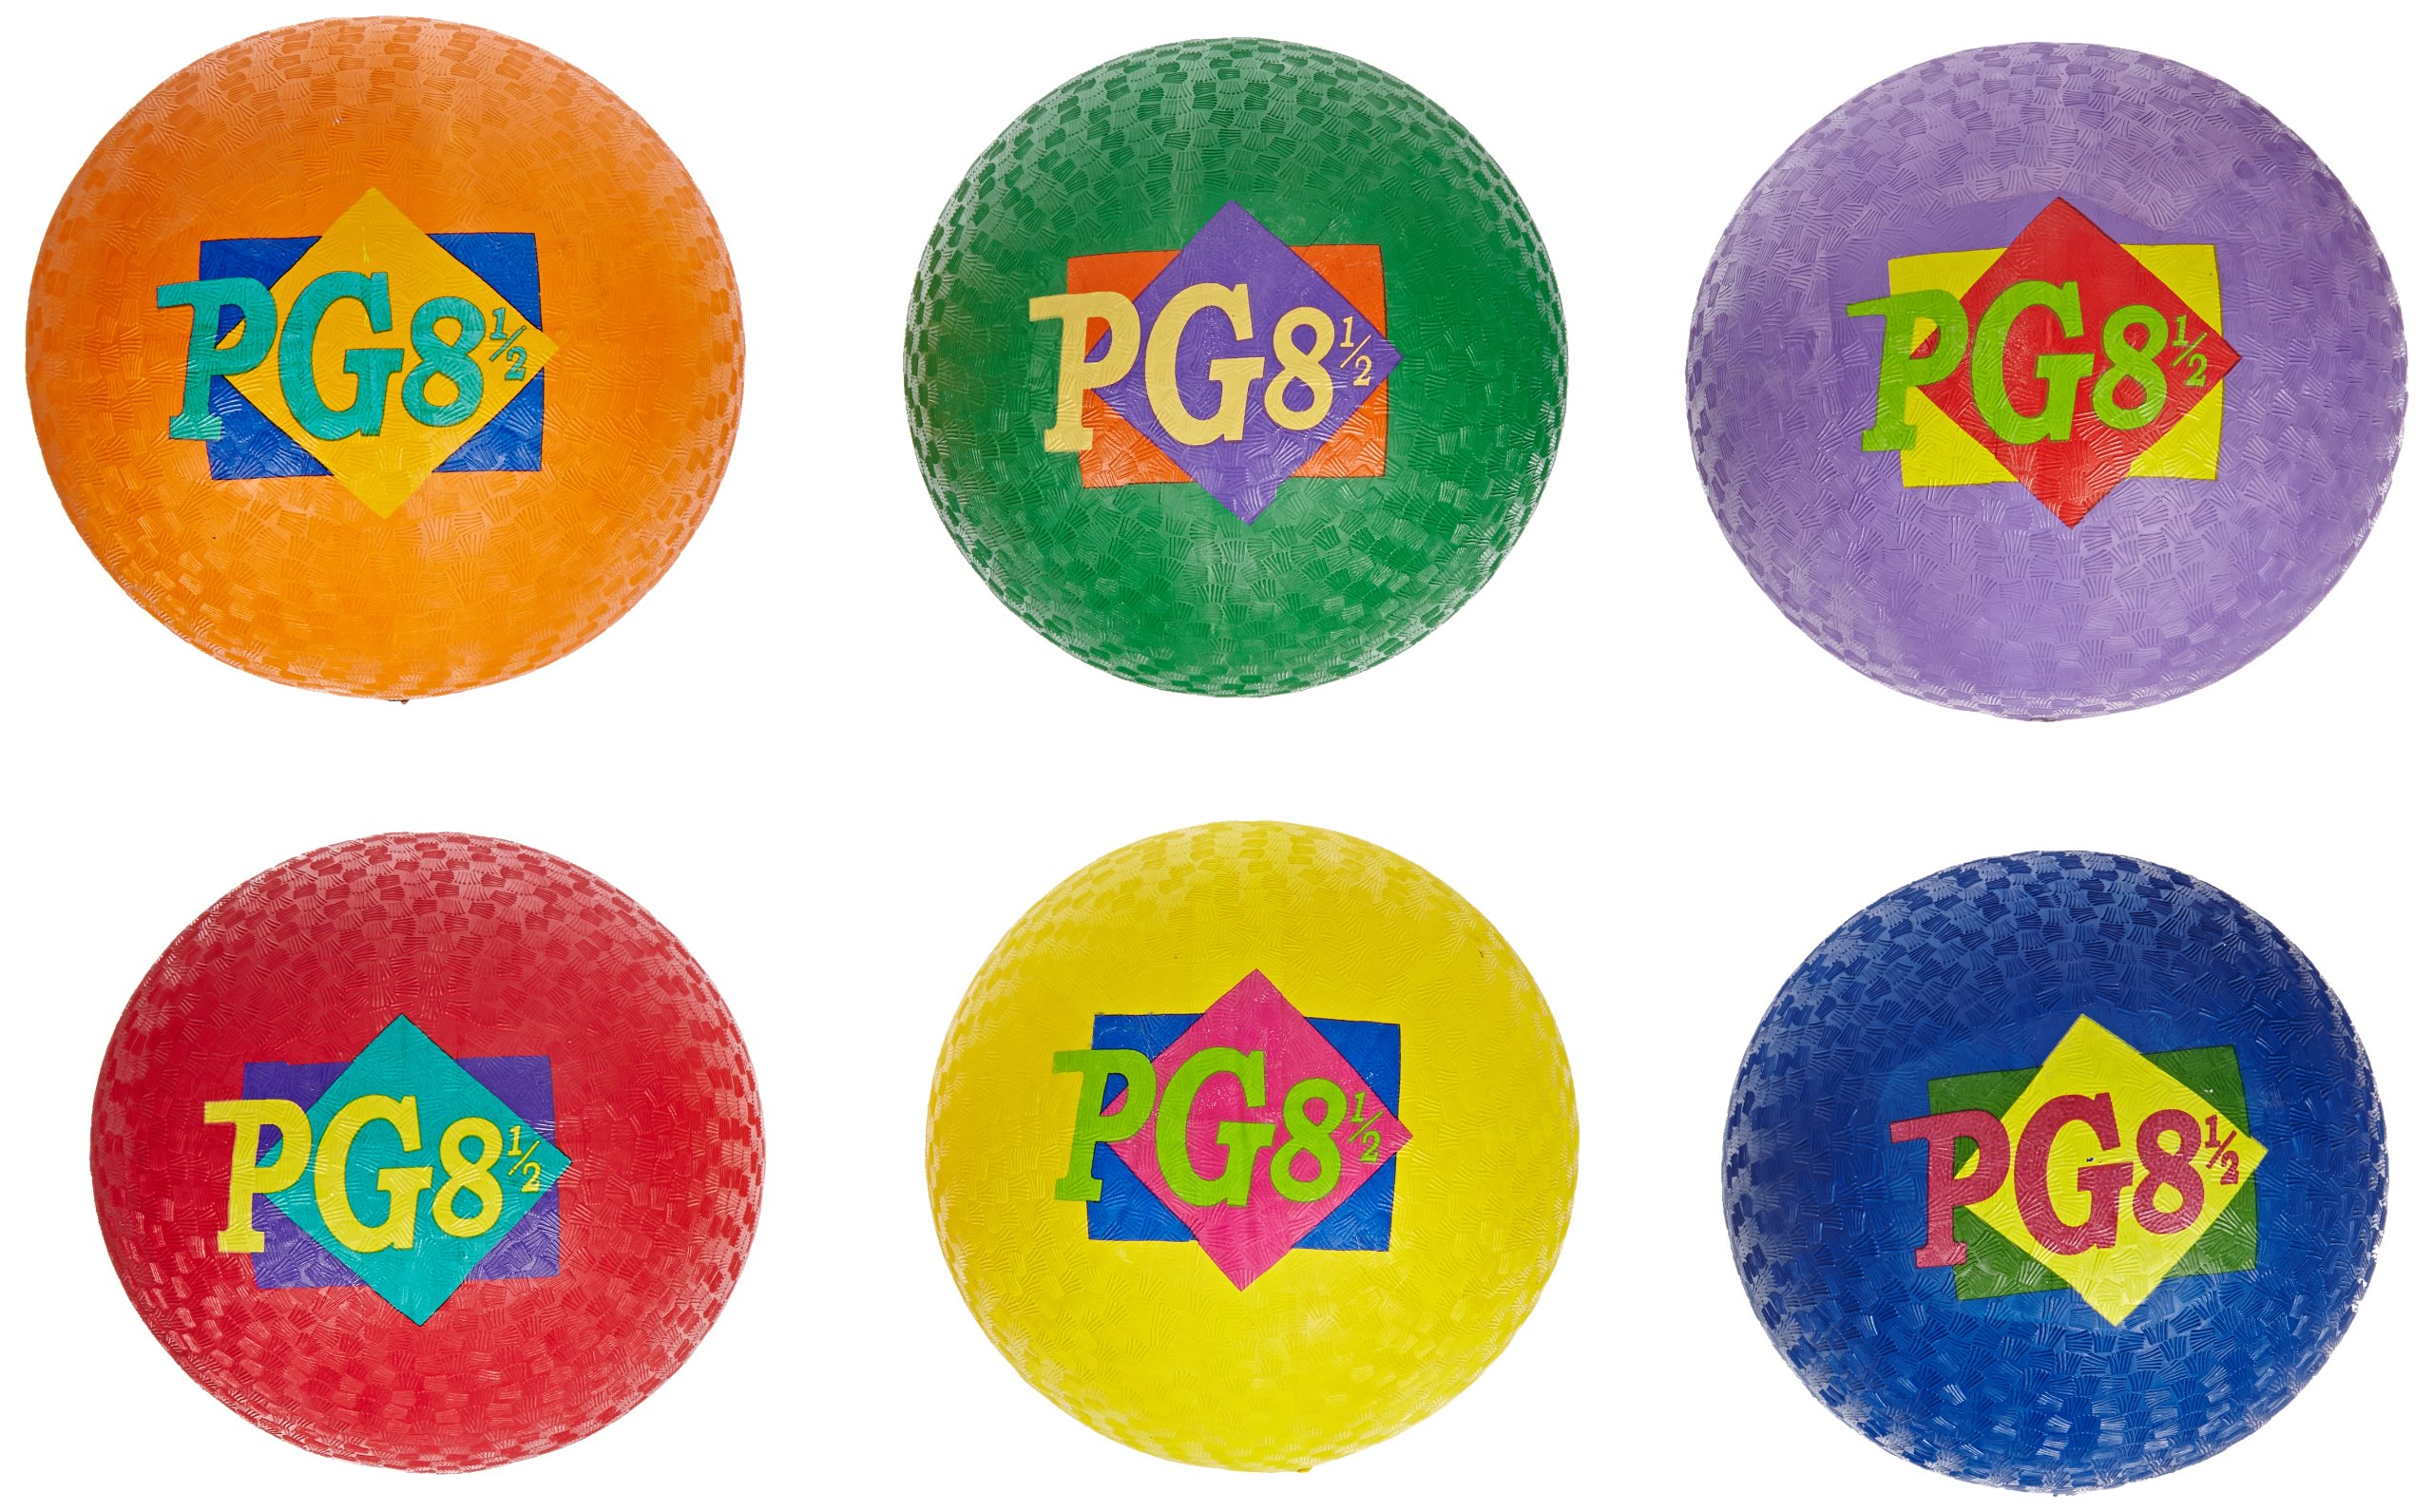 Sportime Playground Rubber Balls, Assorted Colors, Set of 6 by School Smart